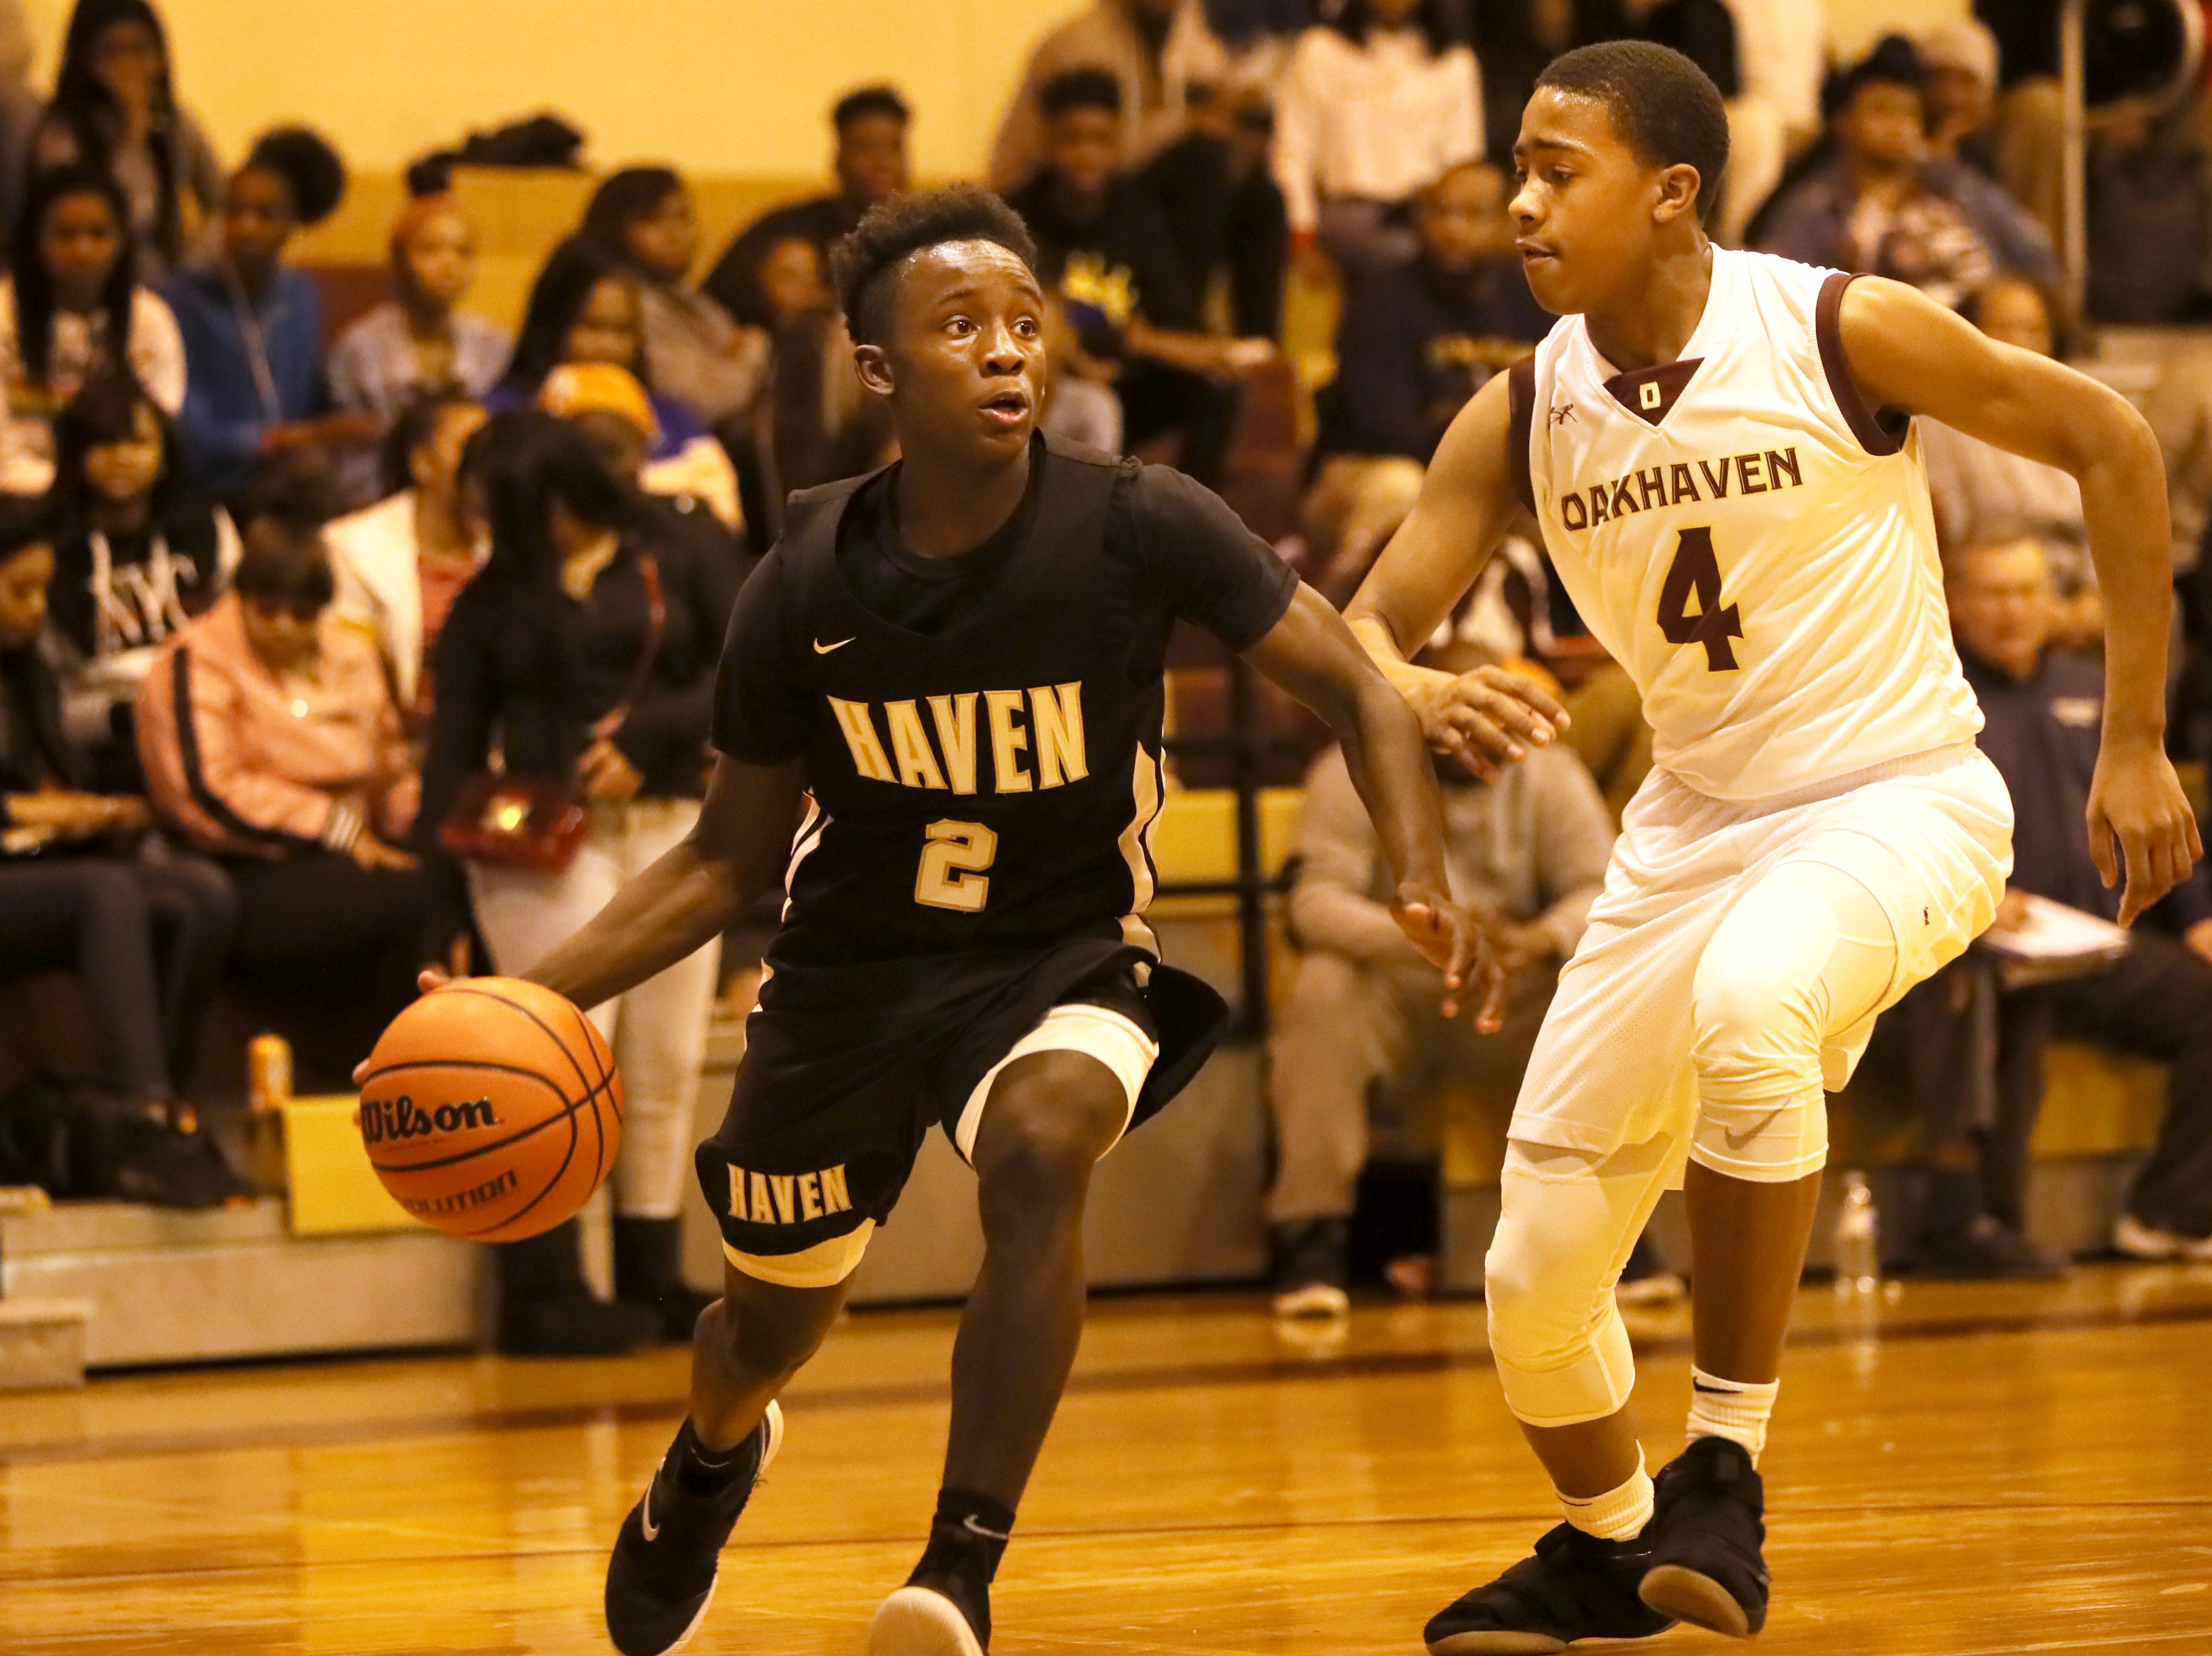 Whitehaven's Kavion McClain drives the baseline as Oakhaven's Terrance Jackson defends during their game at Oakhaven High School on Thursday, Jan. 10, 2019.